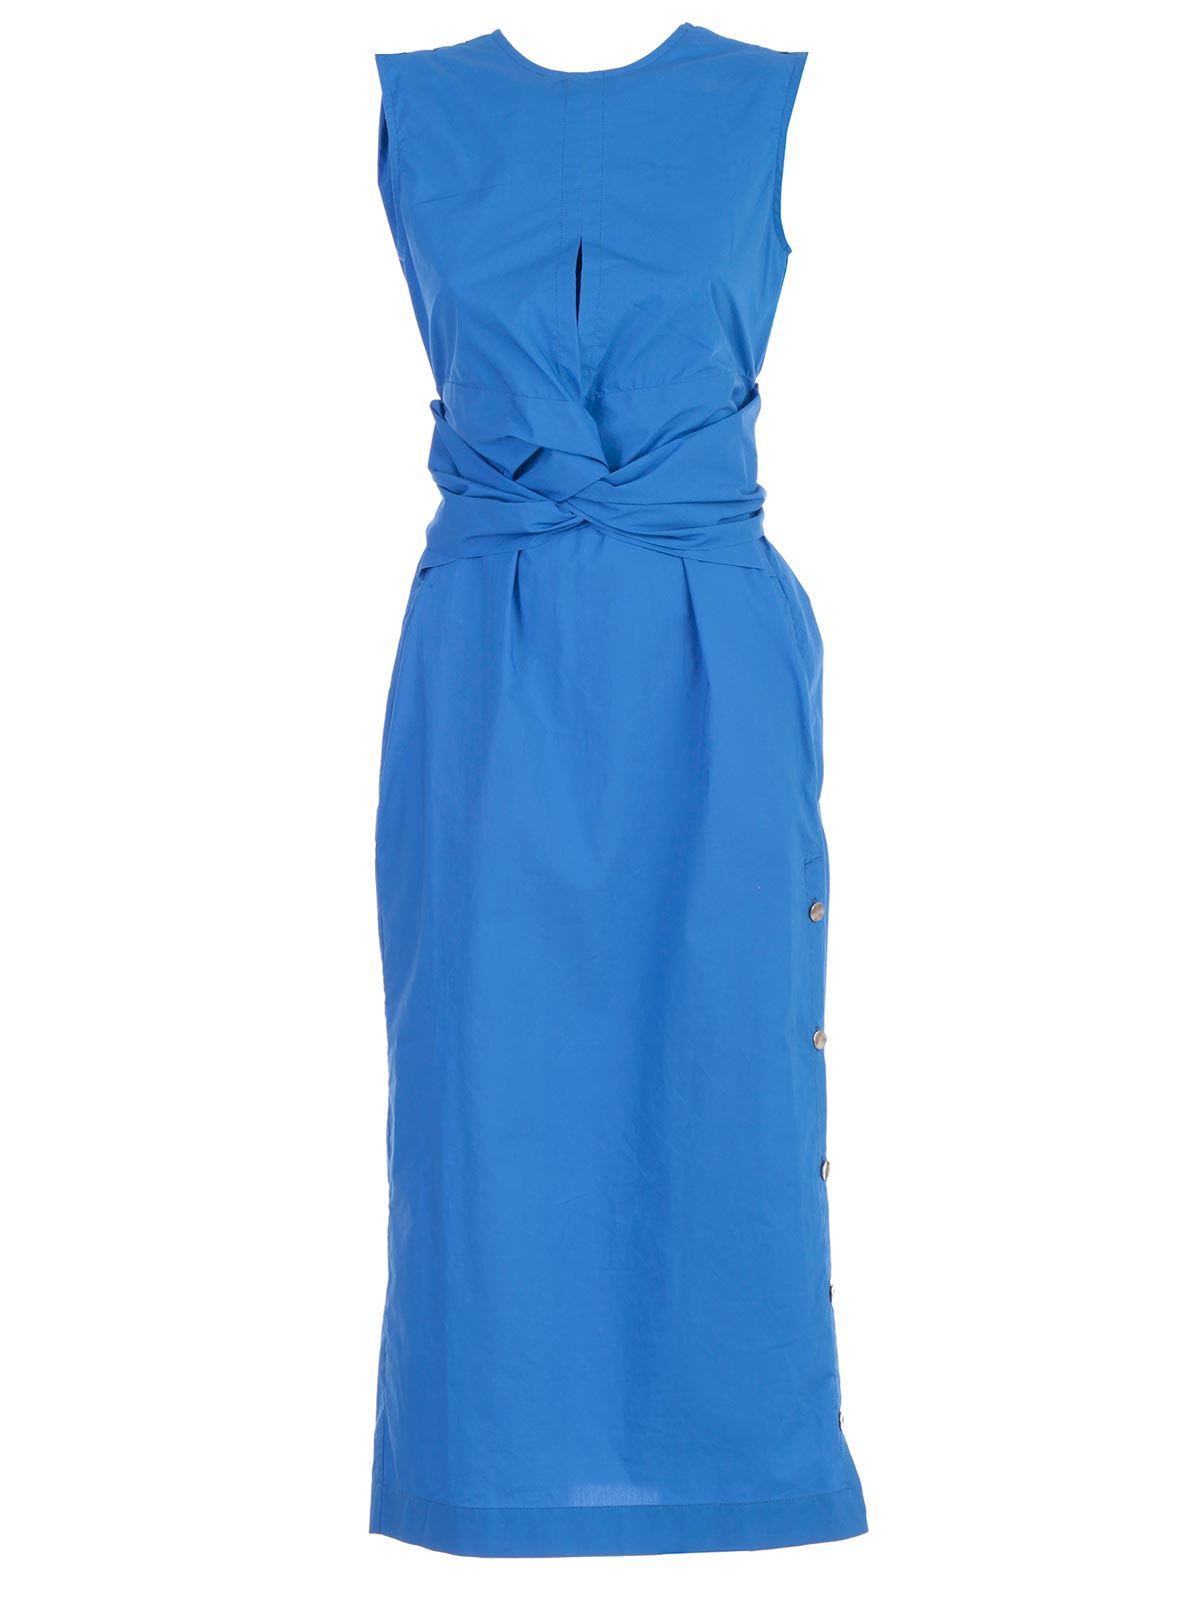 Eudon Choi Tie Knot Dress